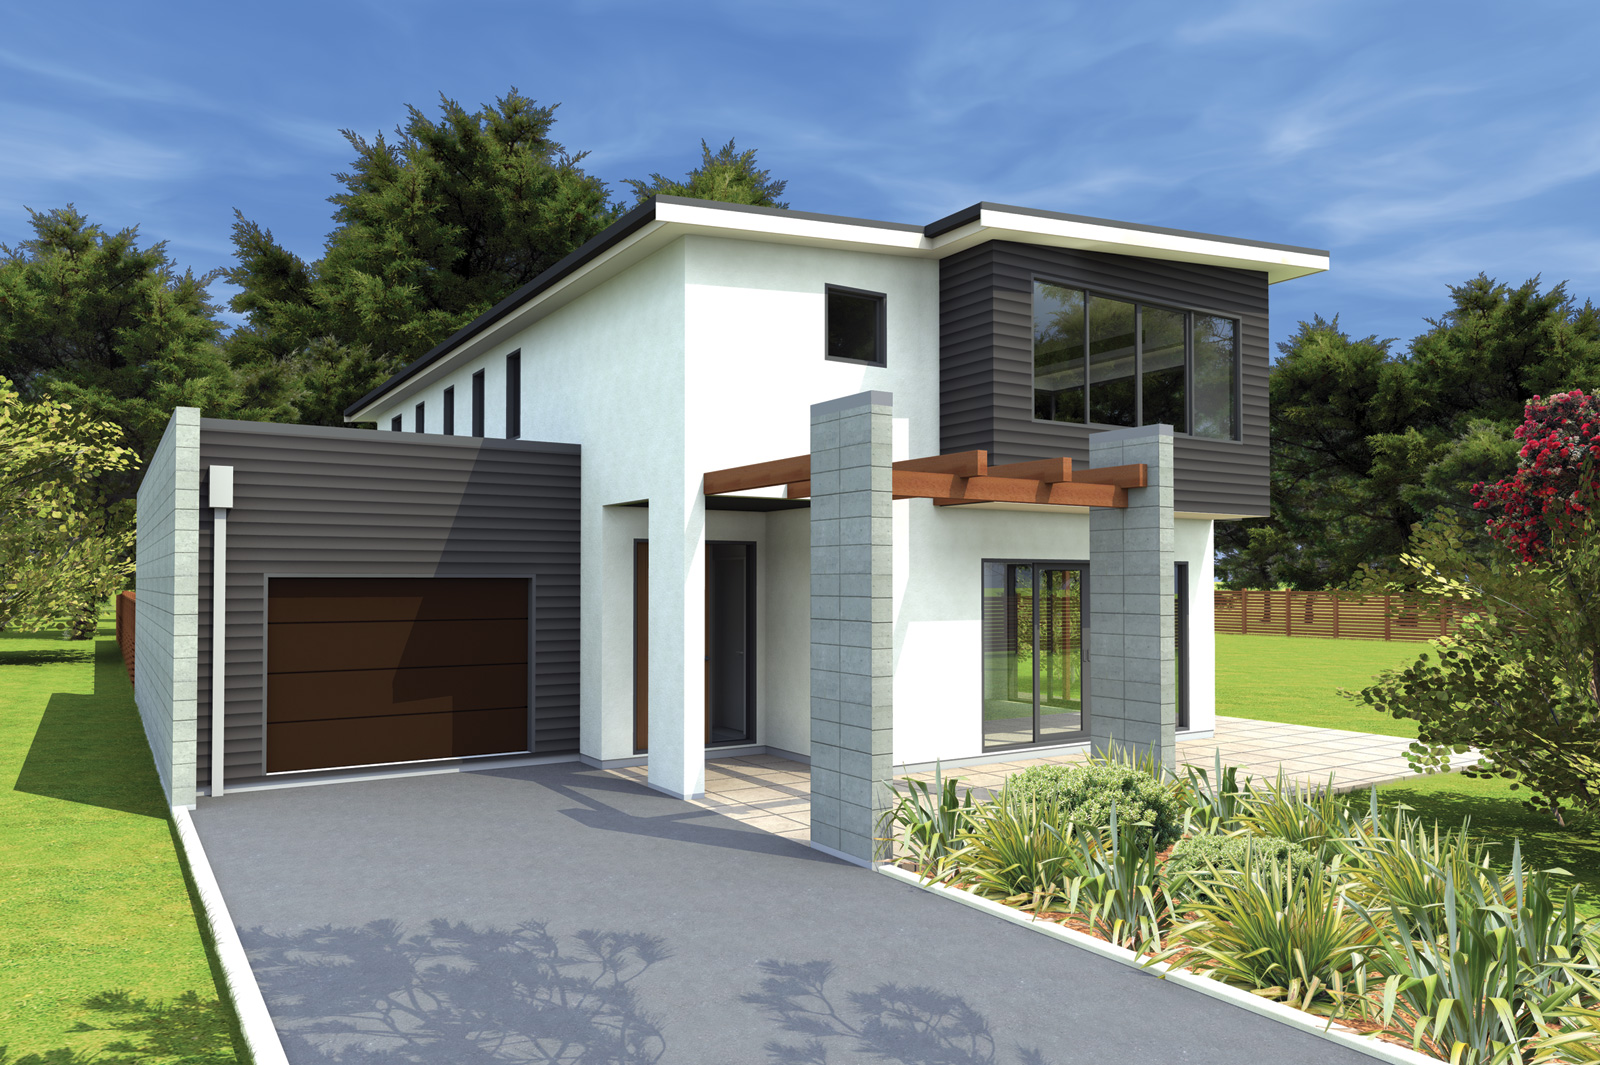 New home designs latest new modern homes designs new for New home layouts